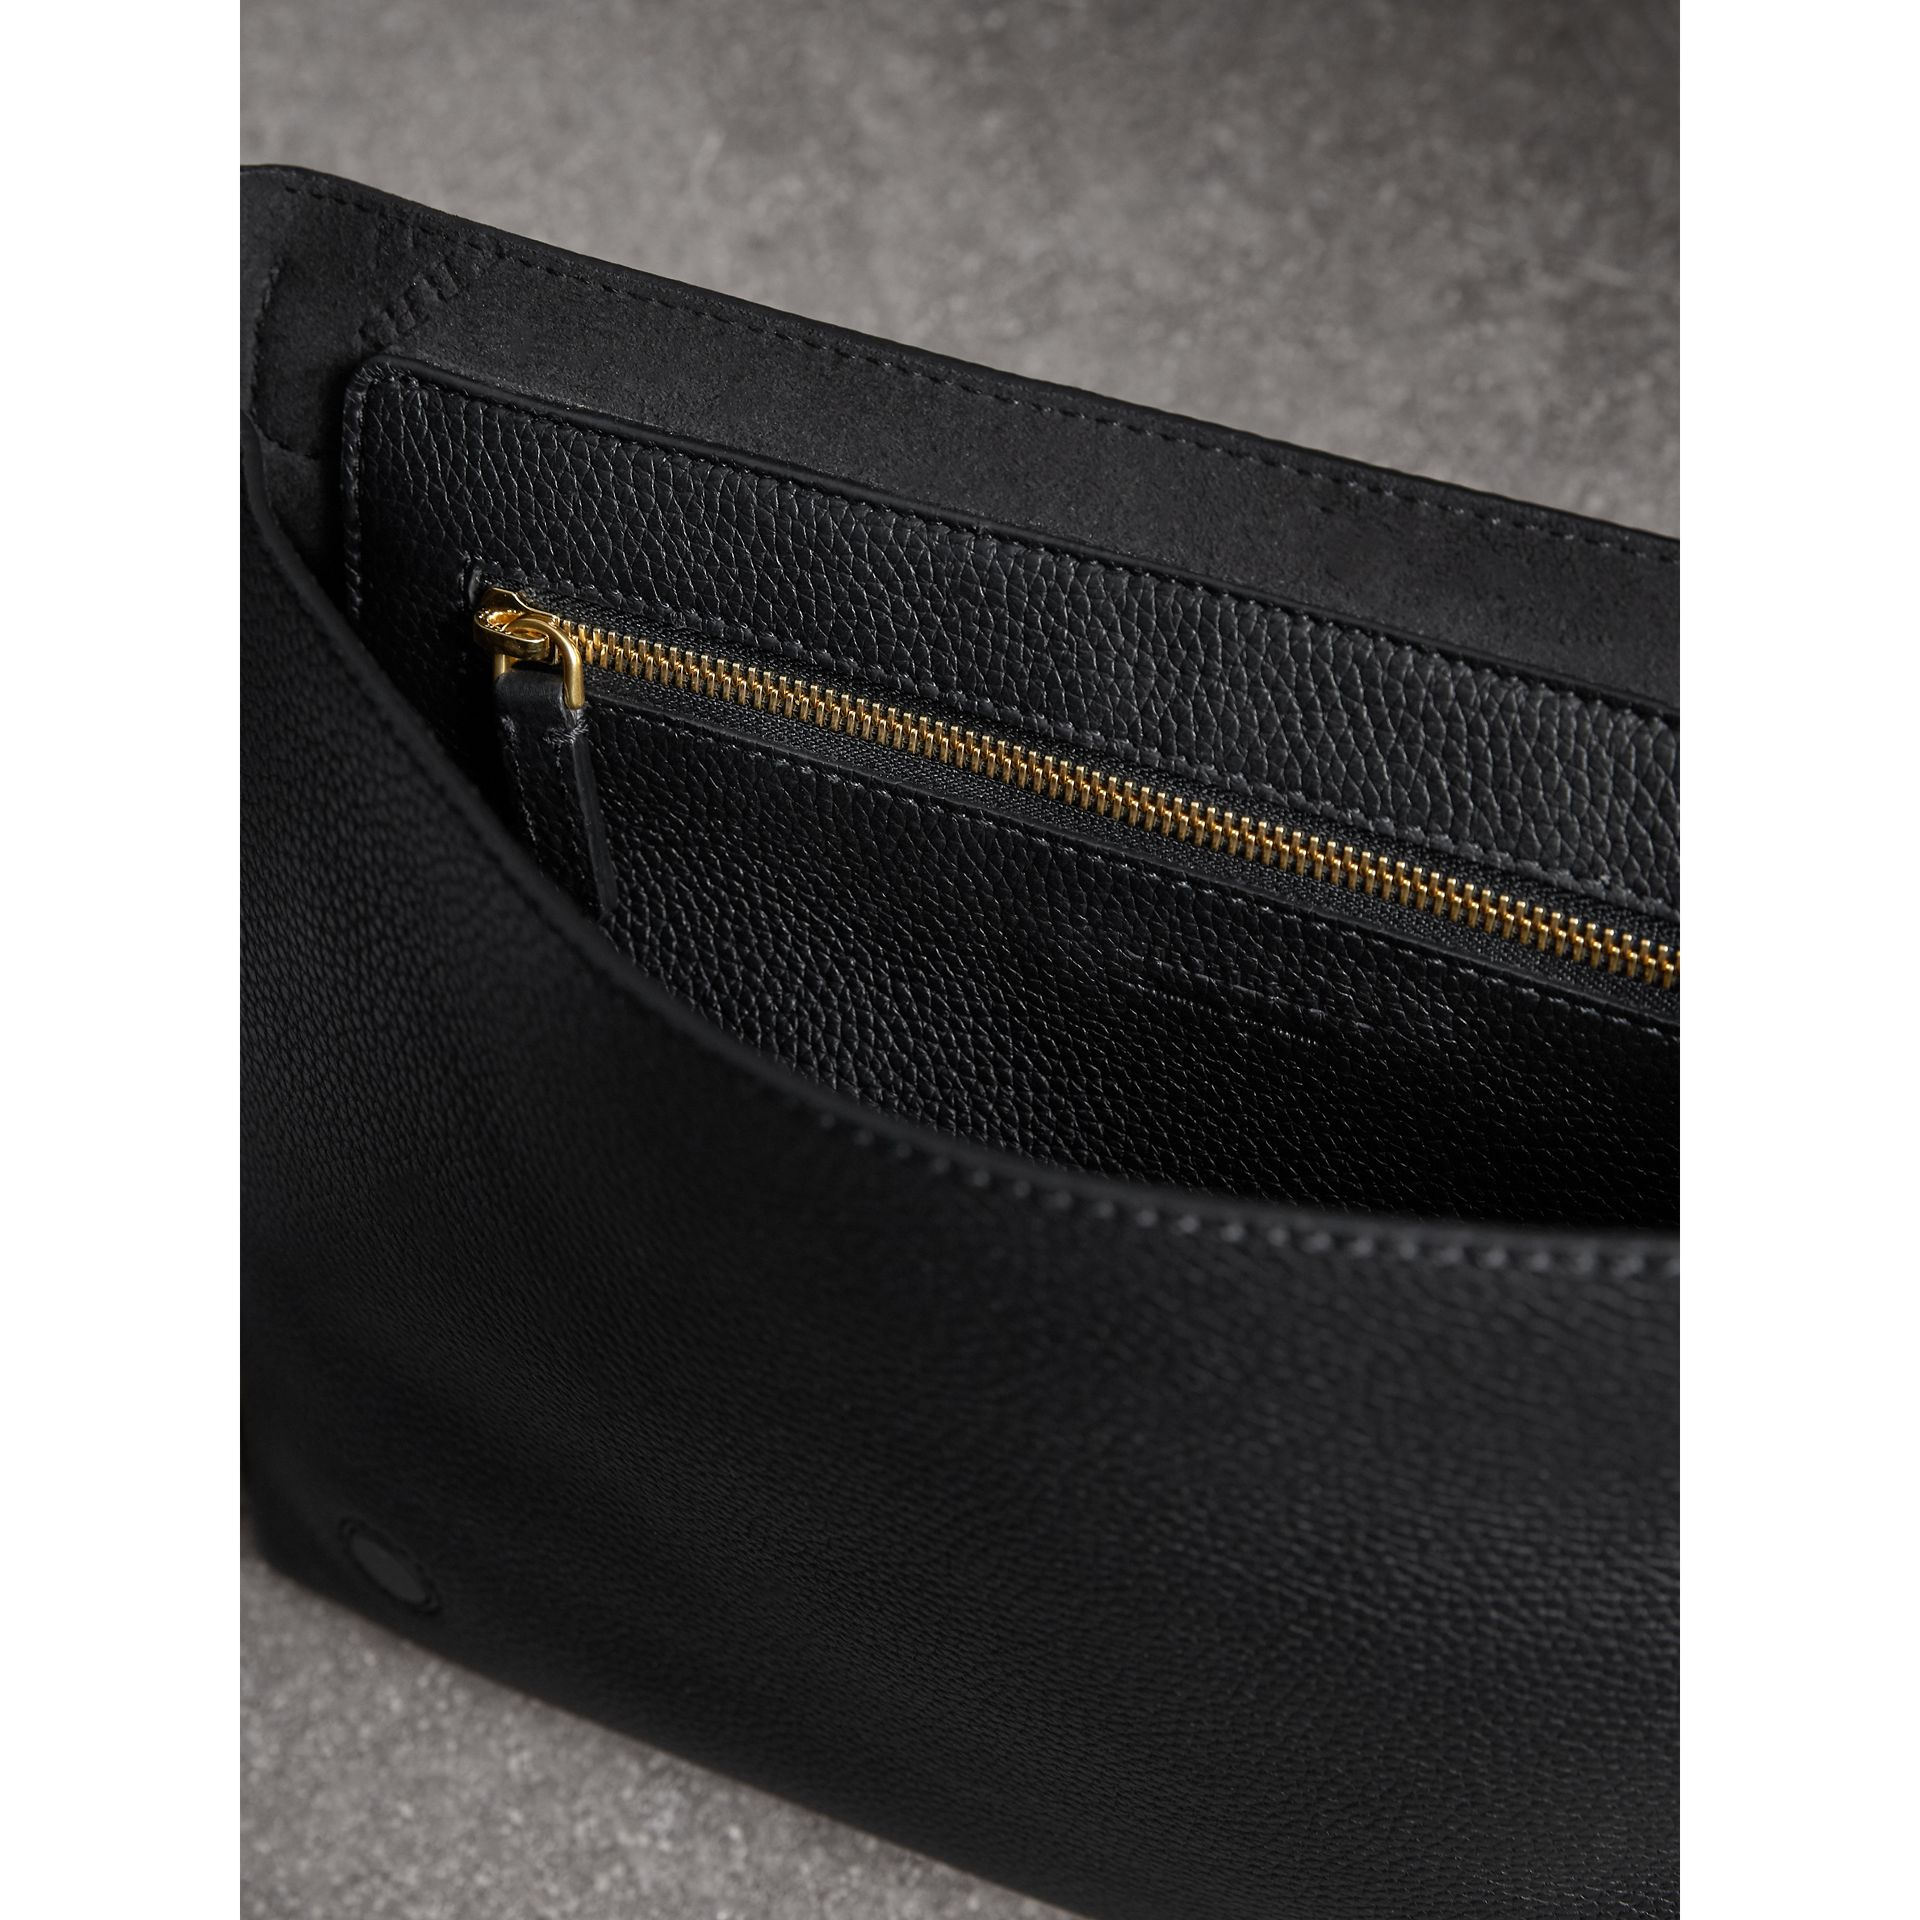 Medium Embossed Leather Messenger Bag in Black - Women | Burberry United Kingdom - gallery image 4